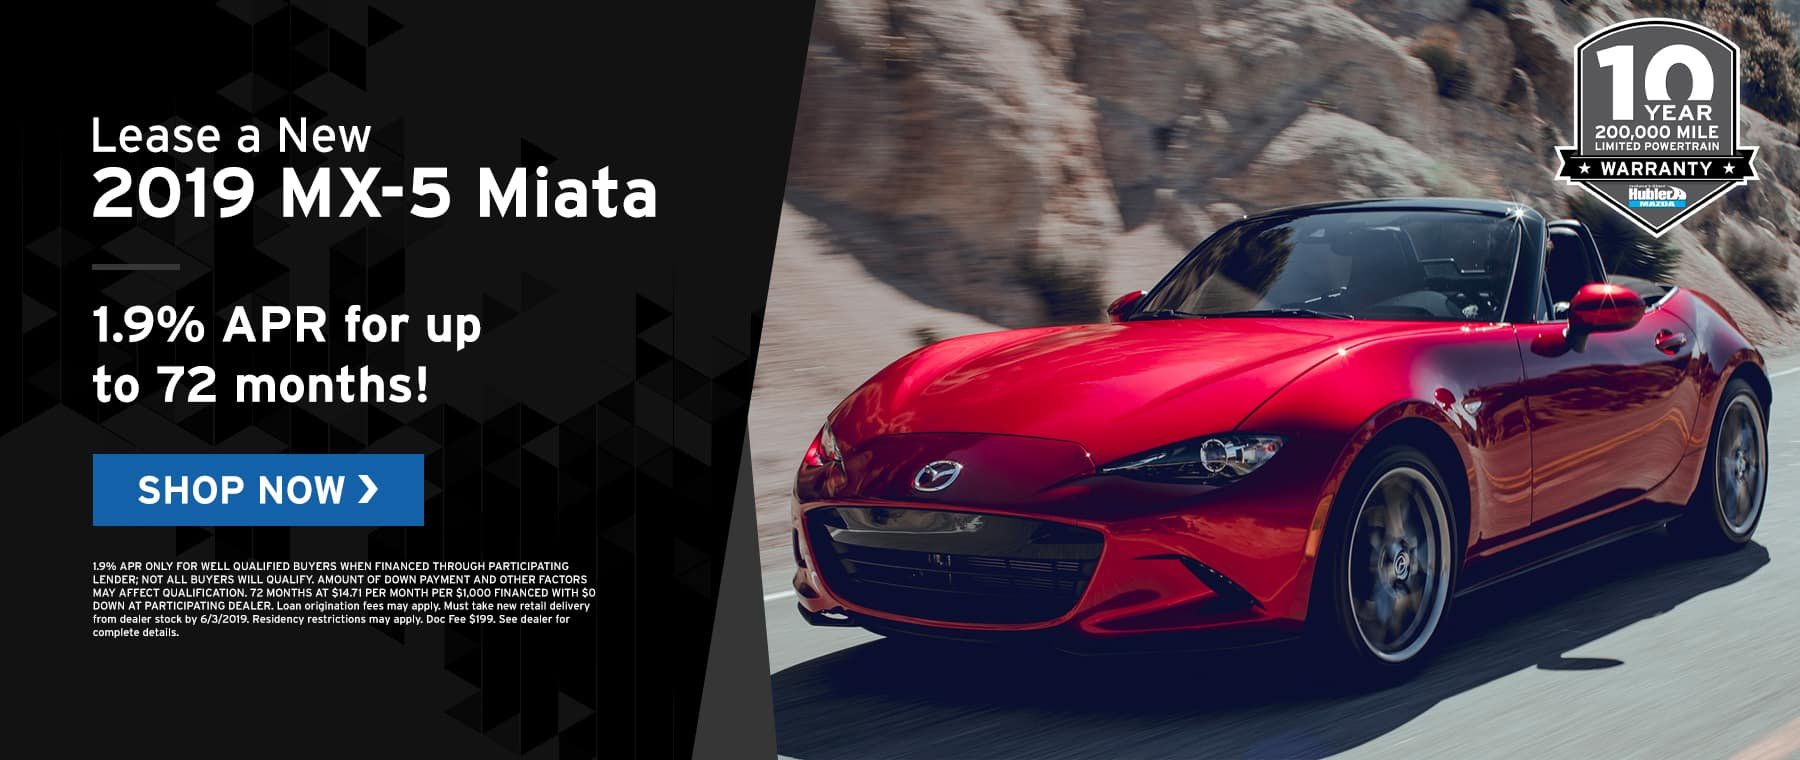 MX-5 Miata specials at Hubler Mazda